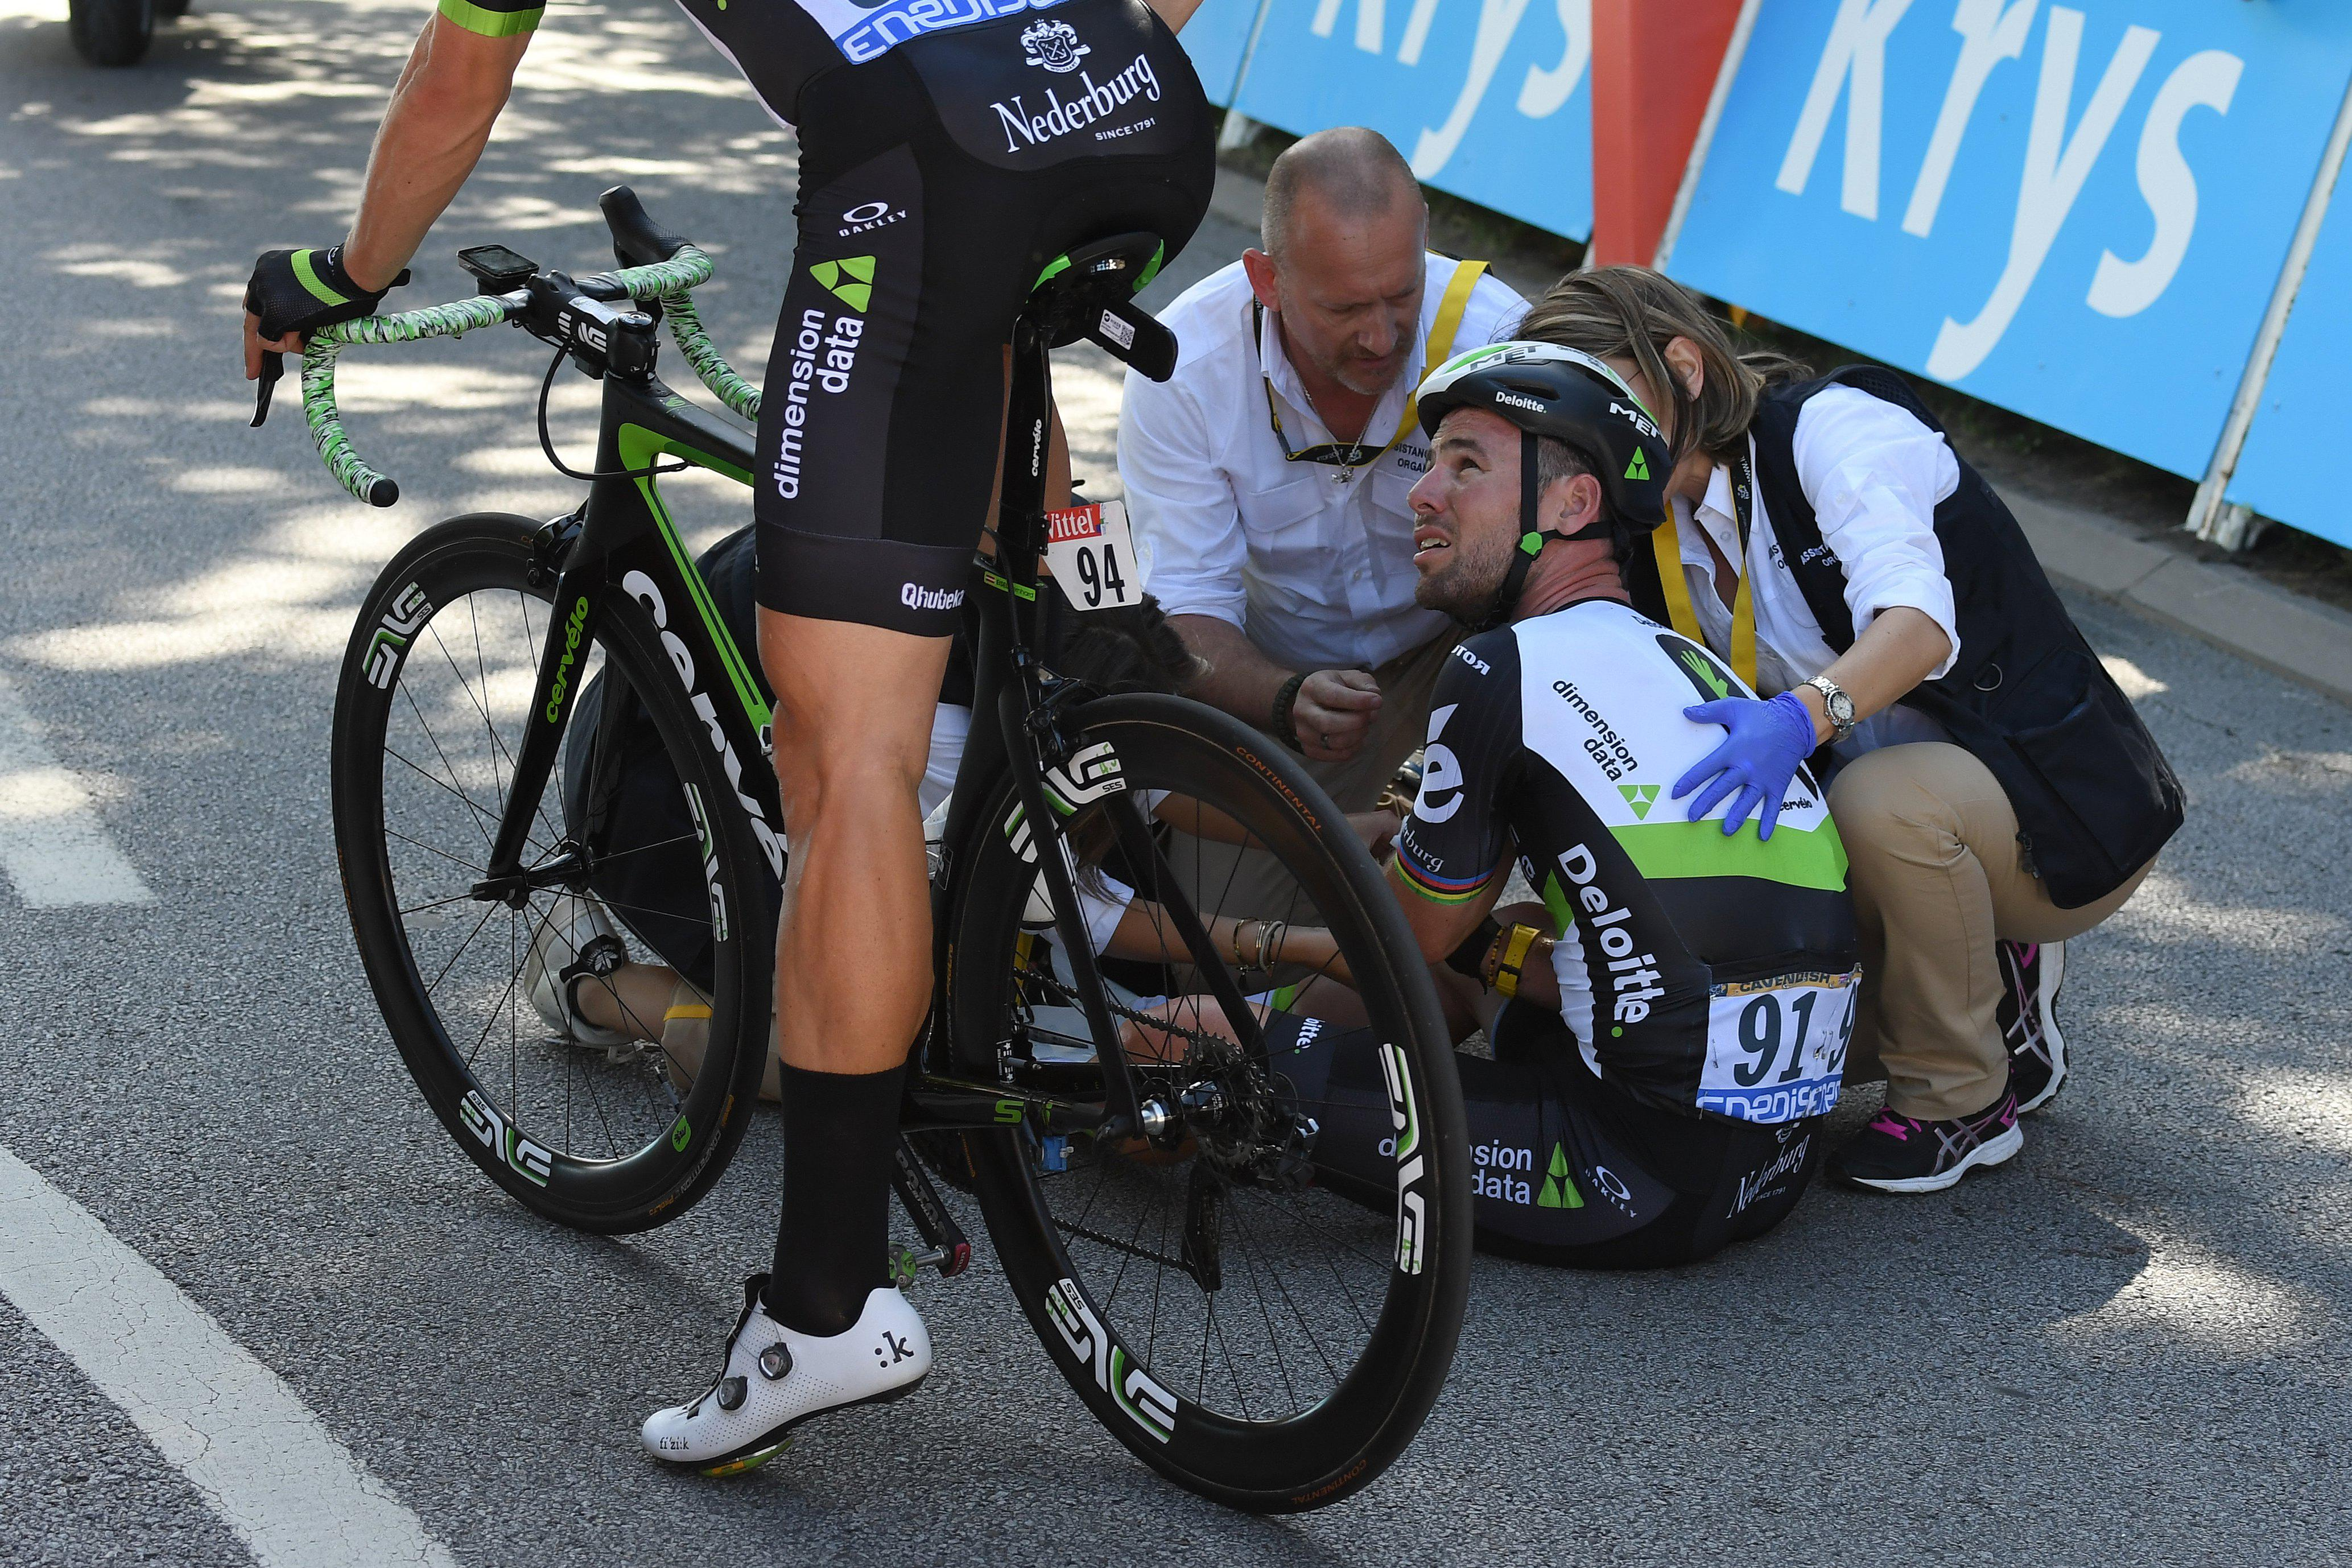 Mark Cavendish was forced to quit the Tour after the crash